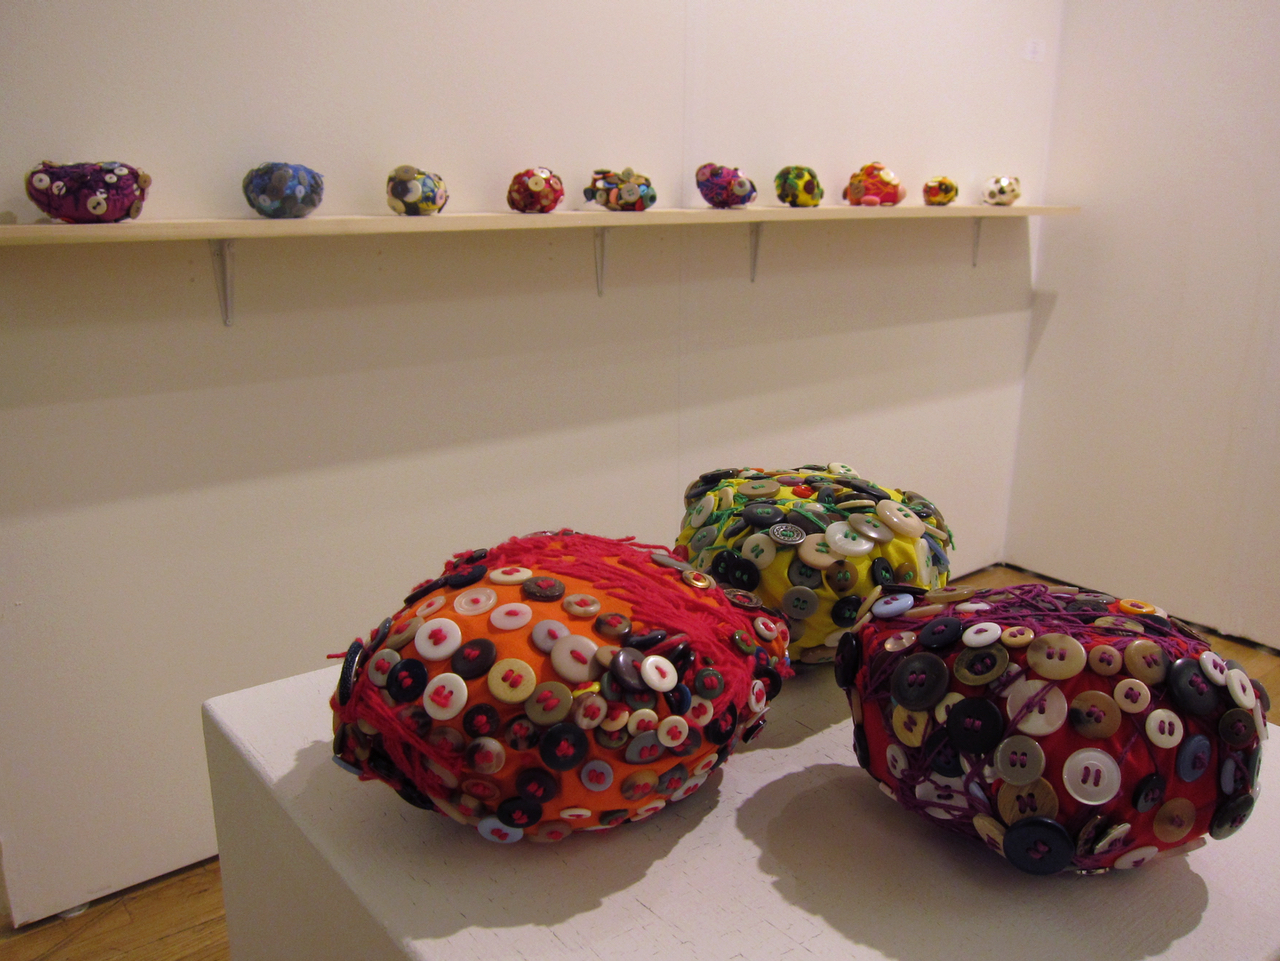 Fabric and button sculptures by Momoka Imura at Yukiko Koide Presents